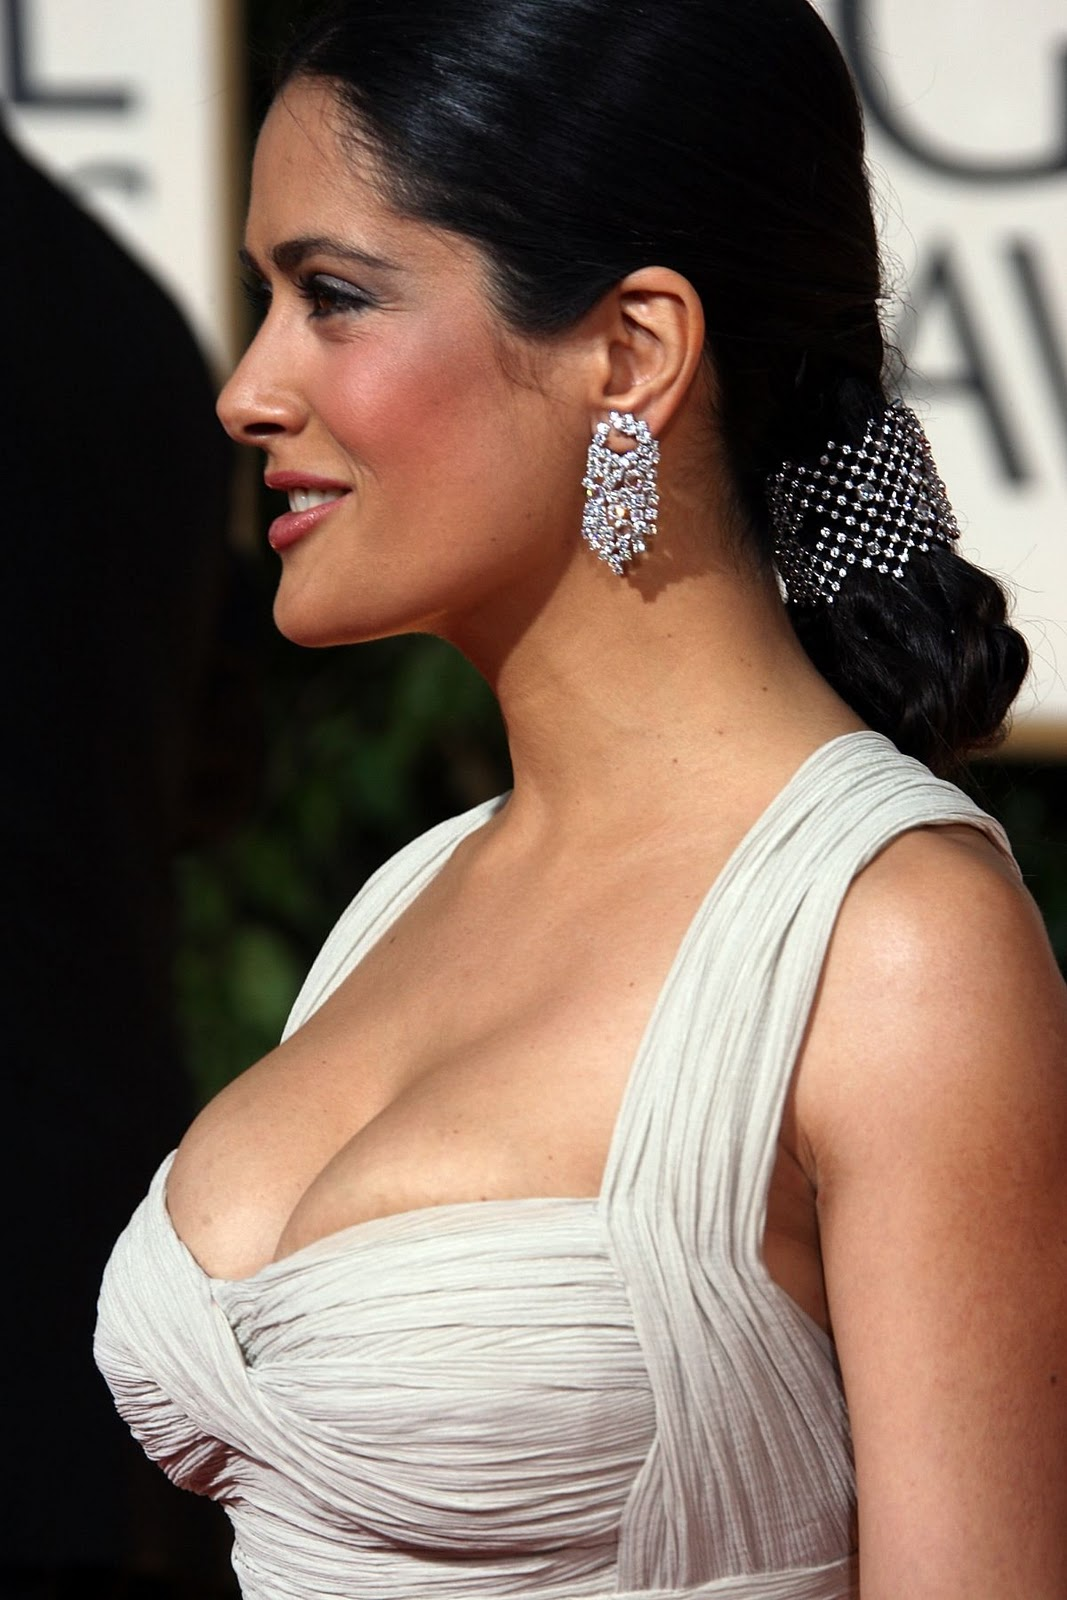 salma hayek sexy naked body